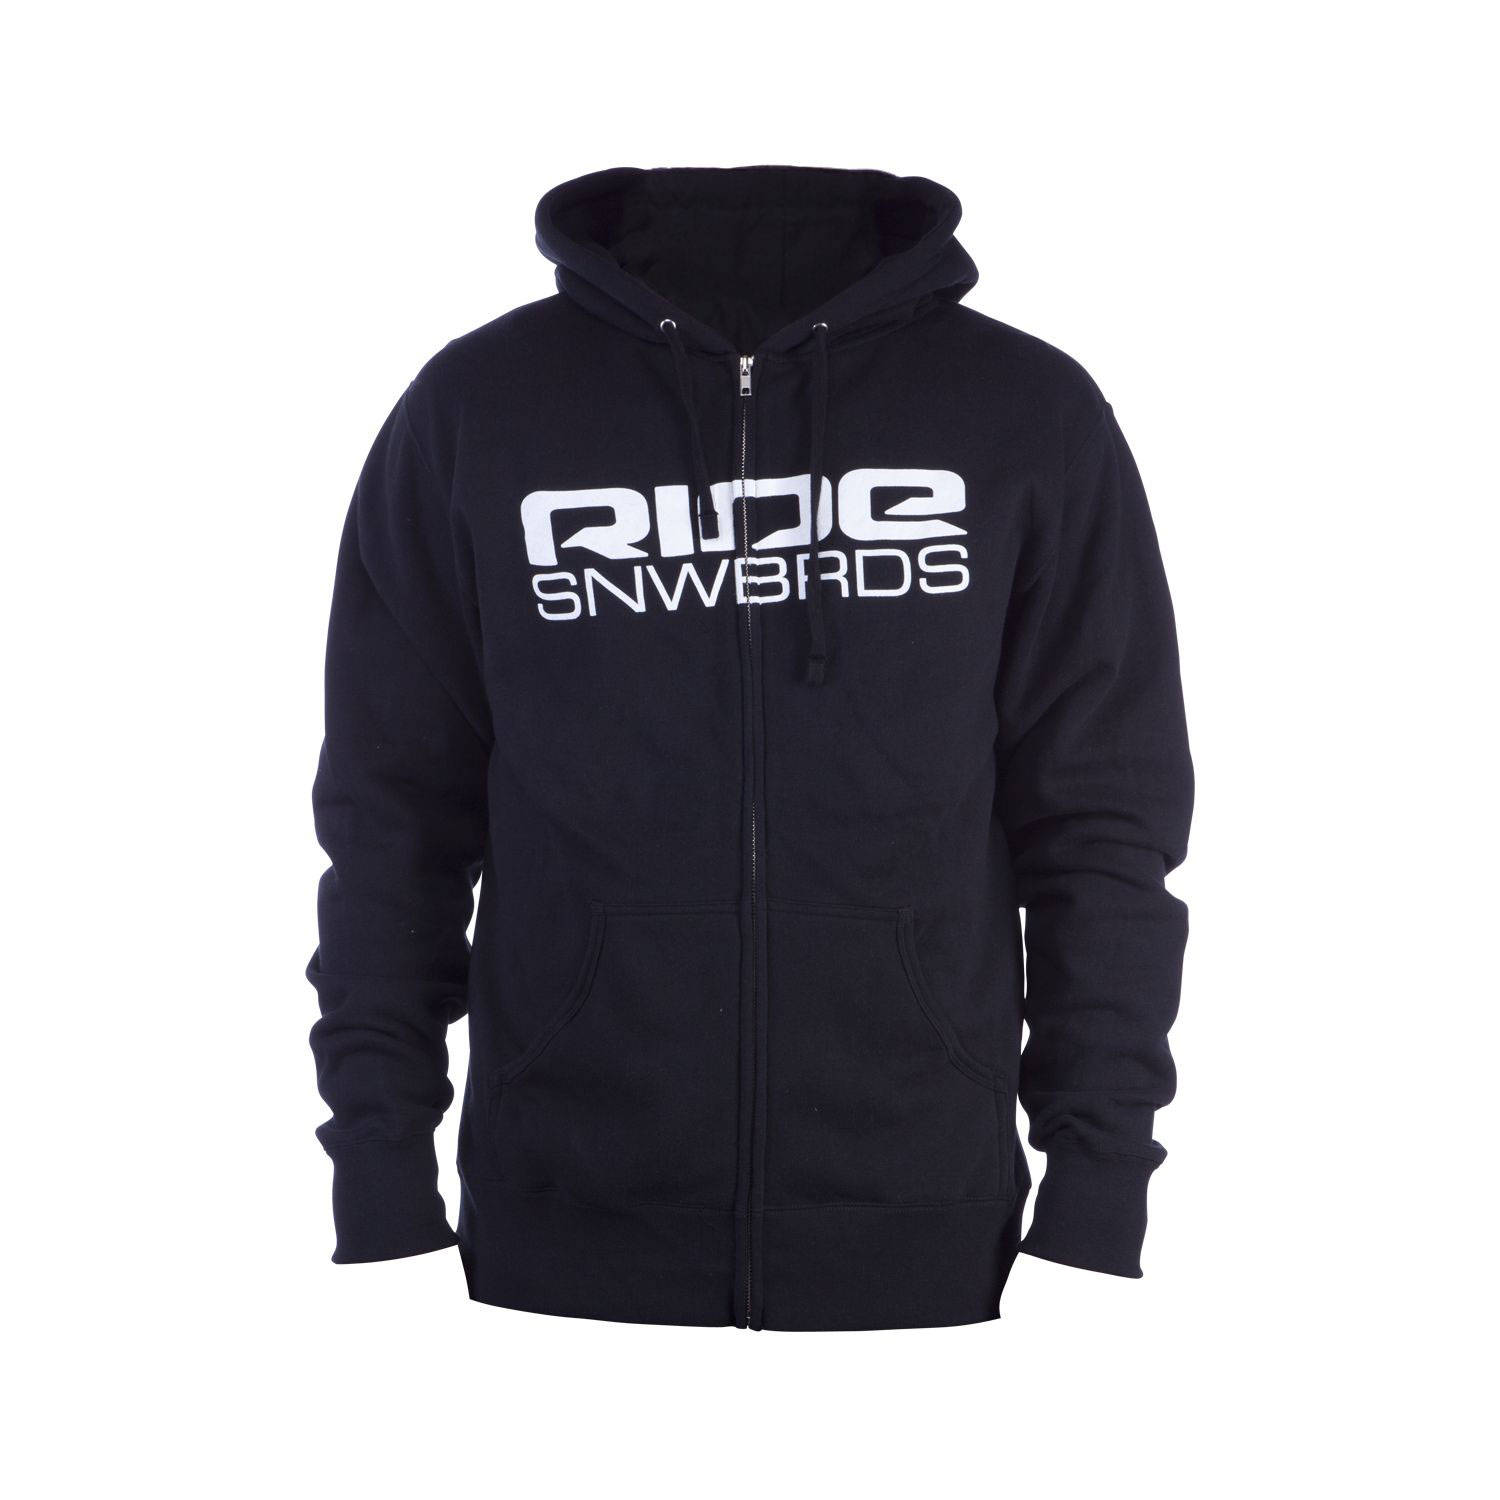 Key Features of the Ride Corp Logo Full Zip Hoodie: 280g 80% Cotton / 20% Poly Center Front Screen Print Lower Back Screen Print - $41.95